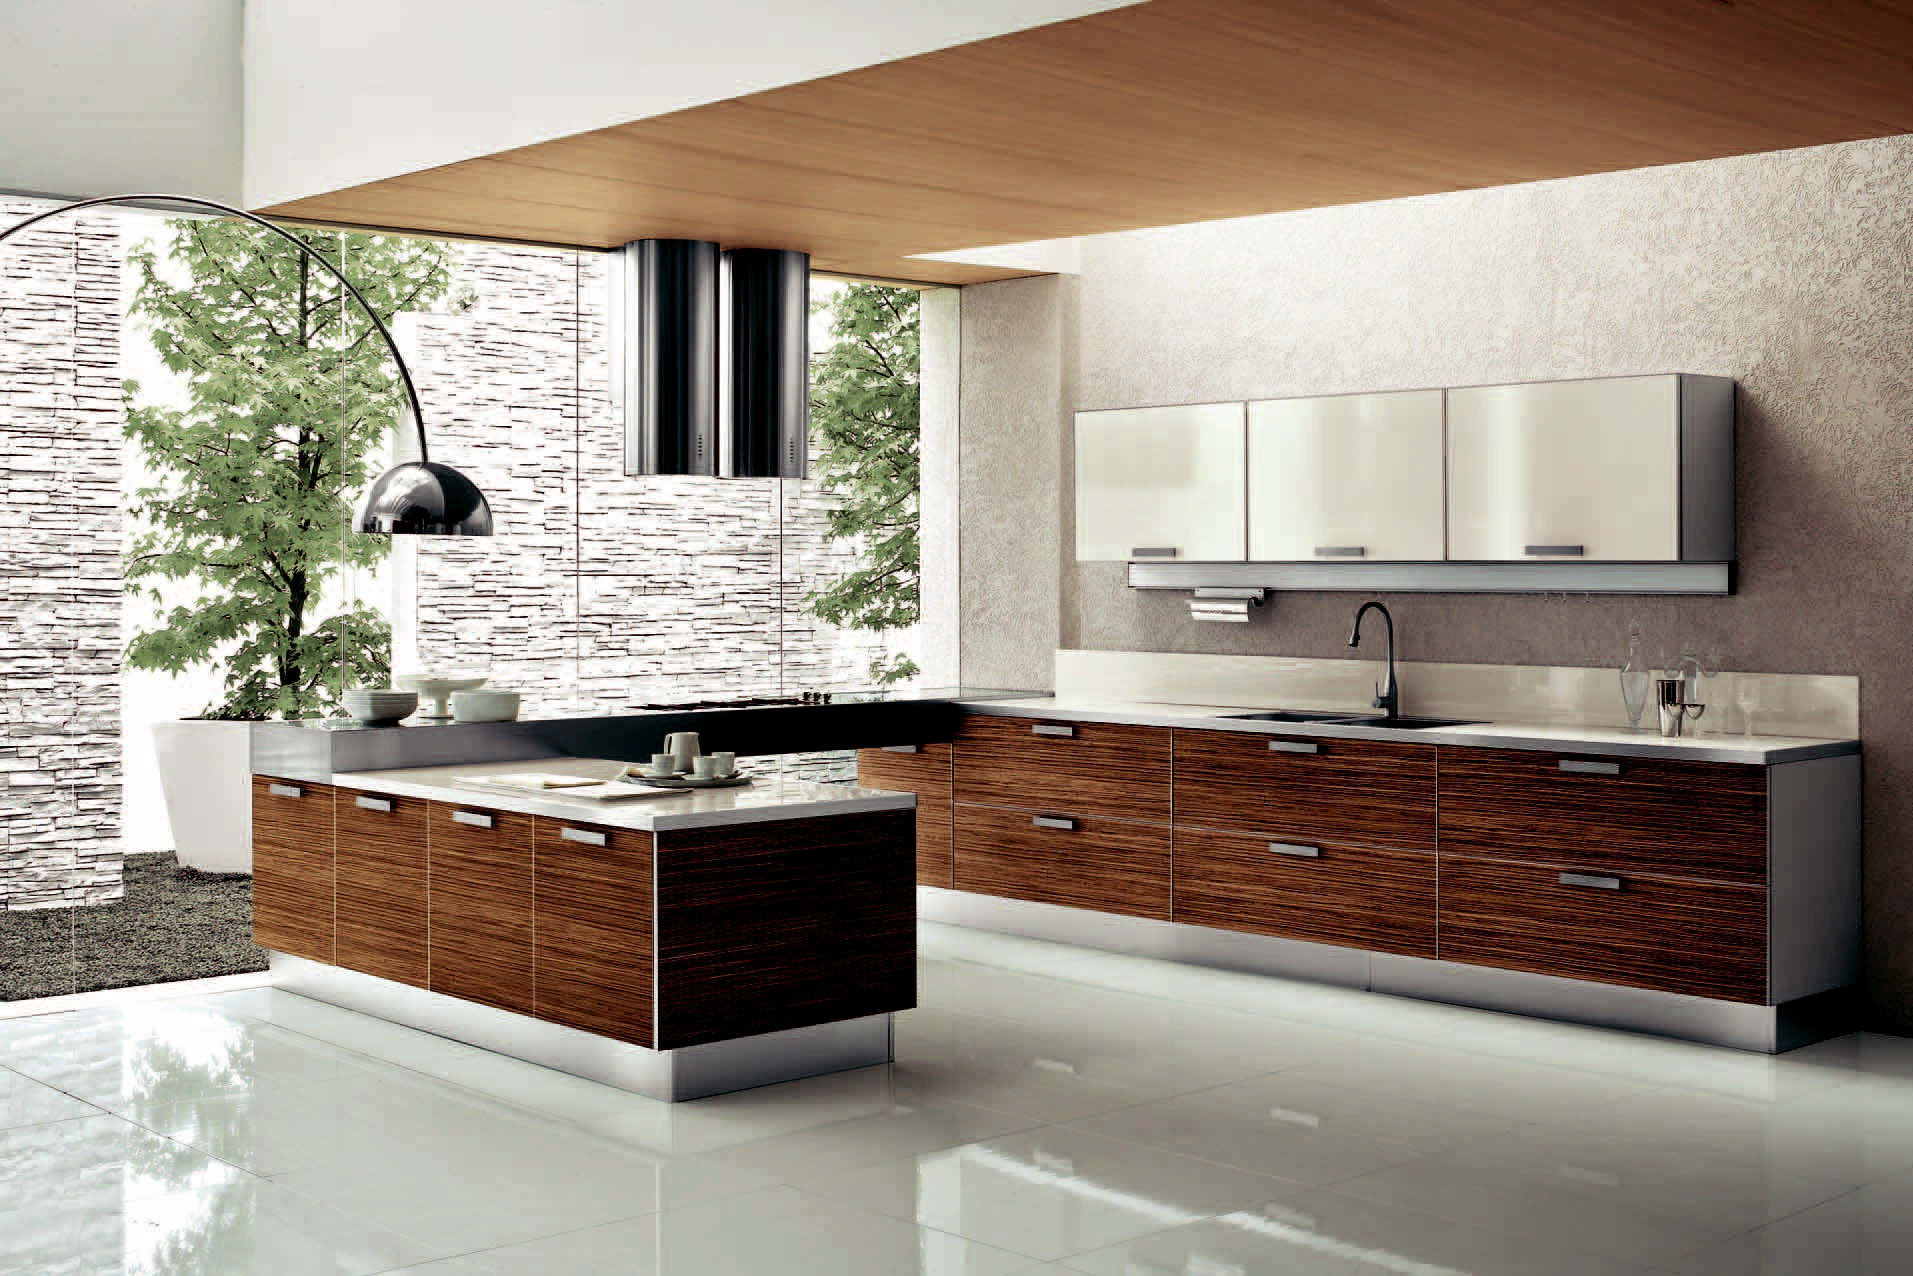 Beyond kitchens affordable kitchen cupboards cape town for Modern kitchen company